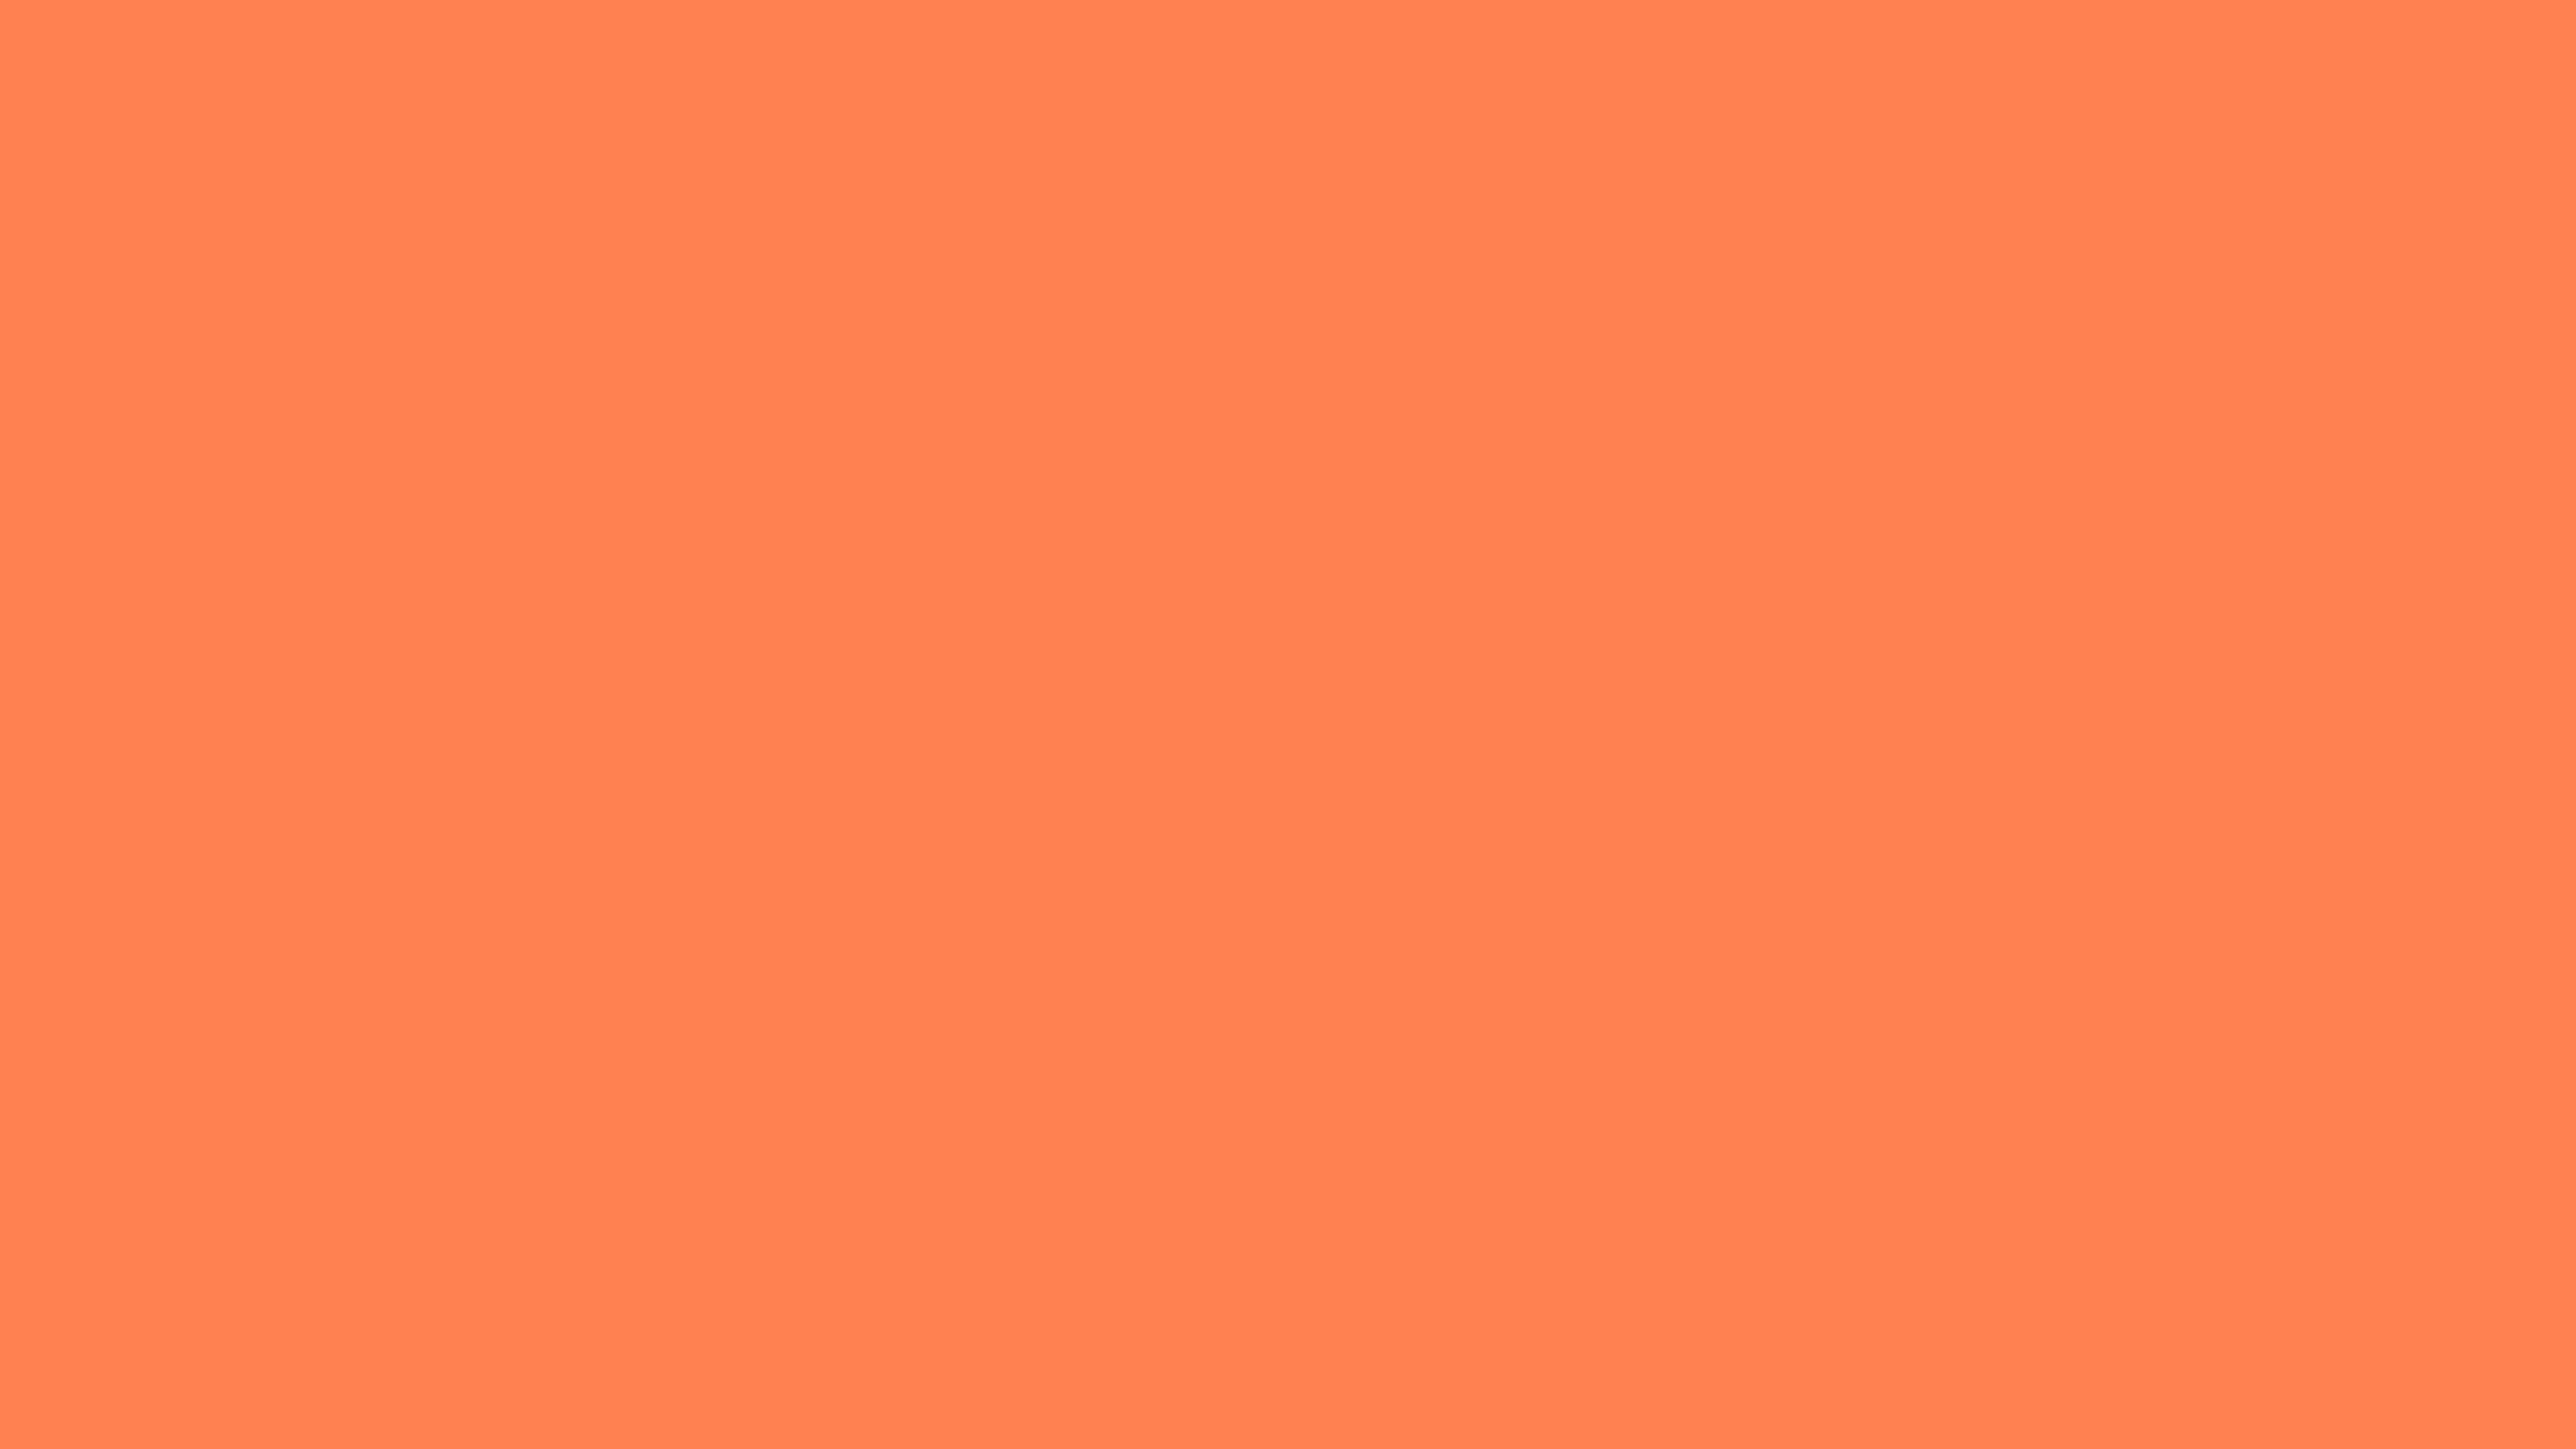 3840x2160 Coral Solid Color Background